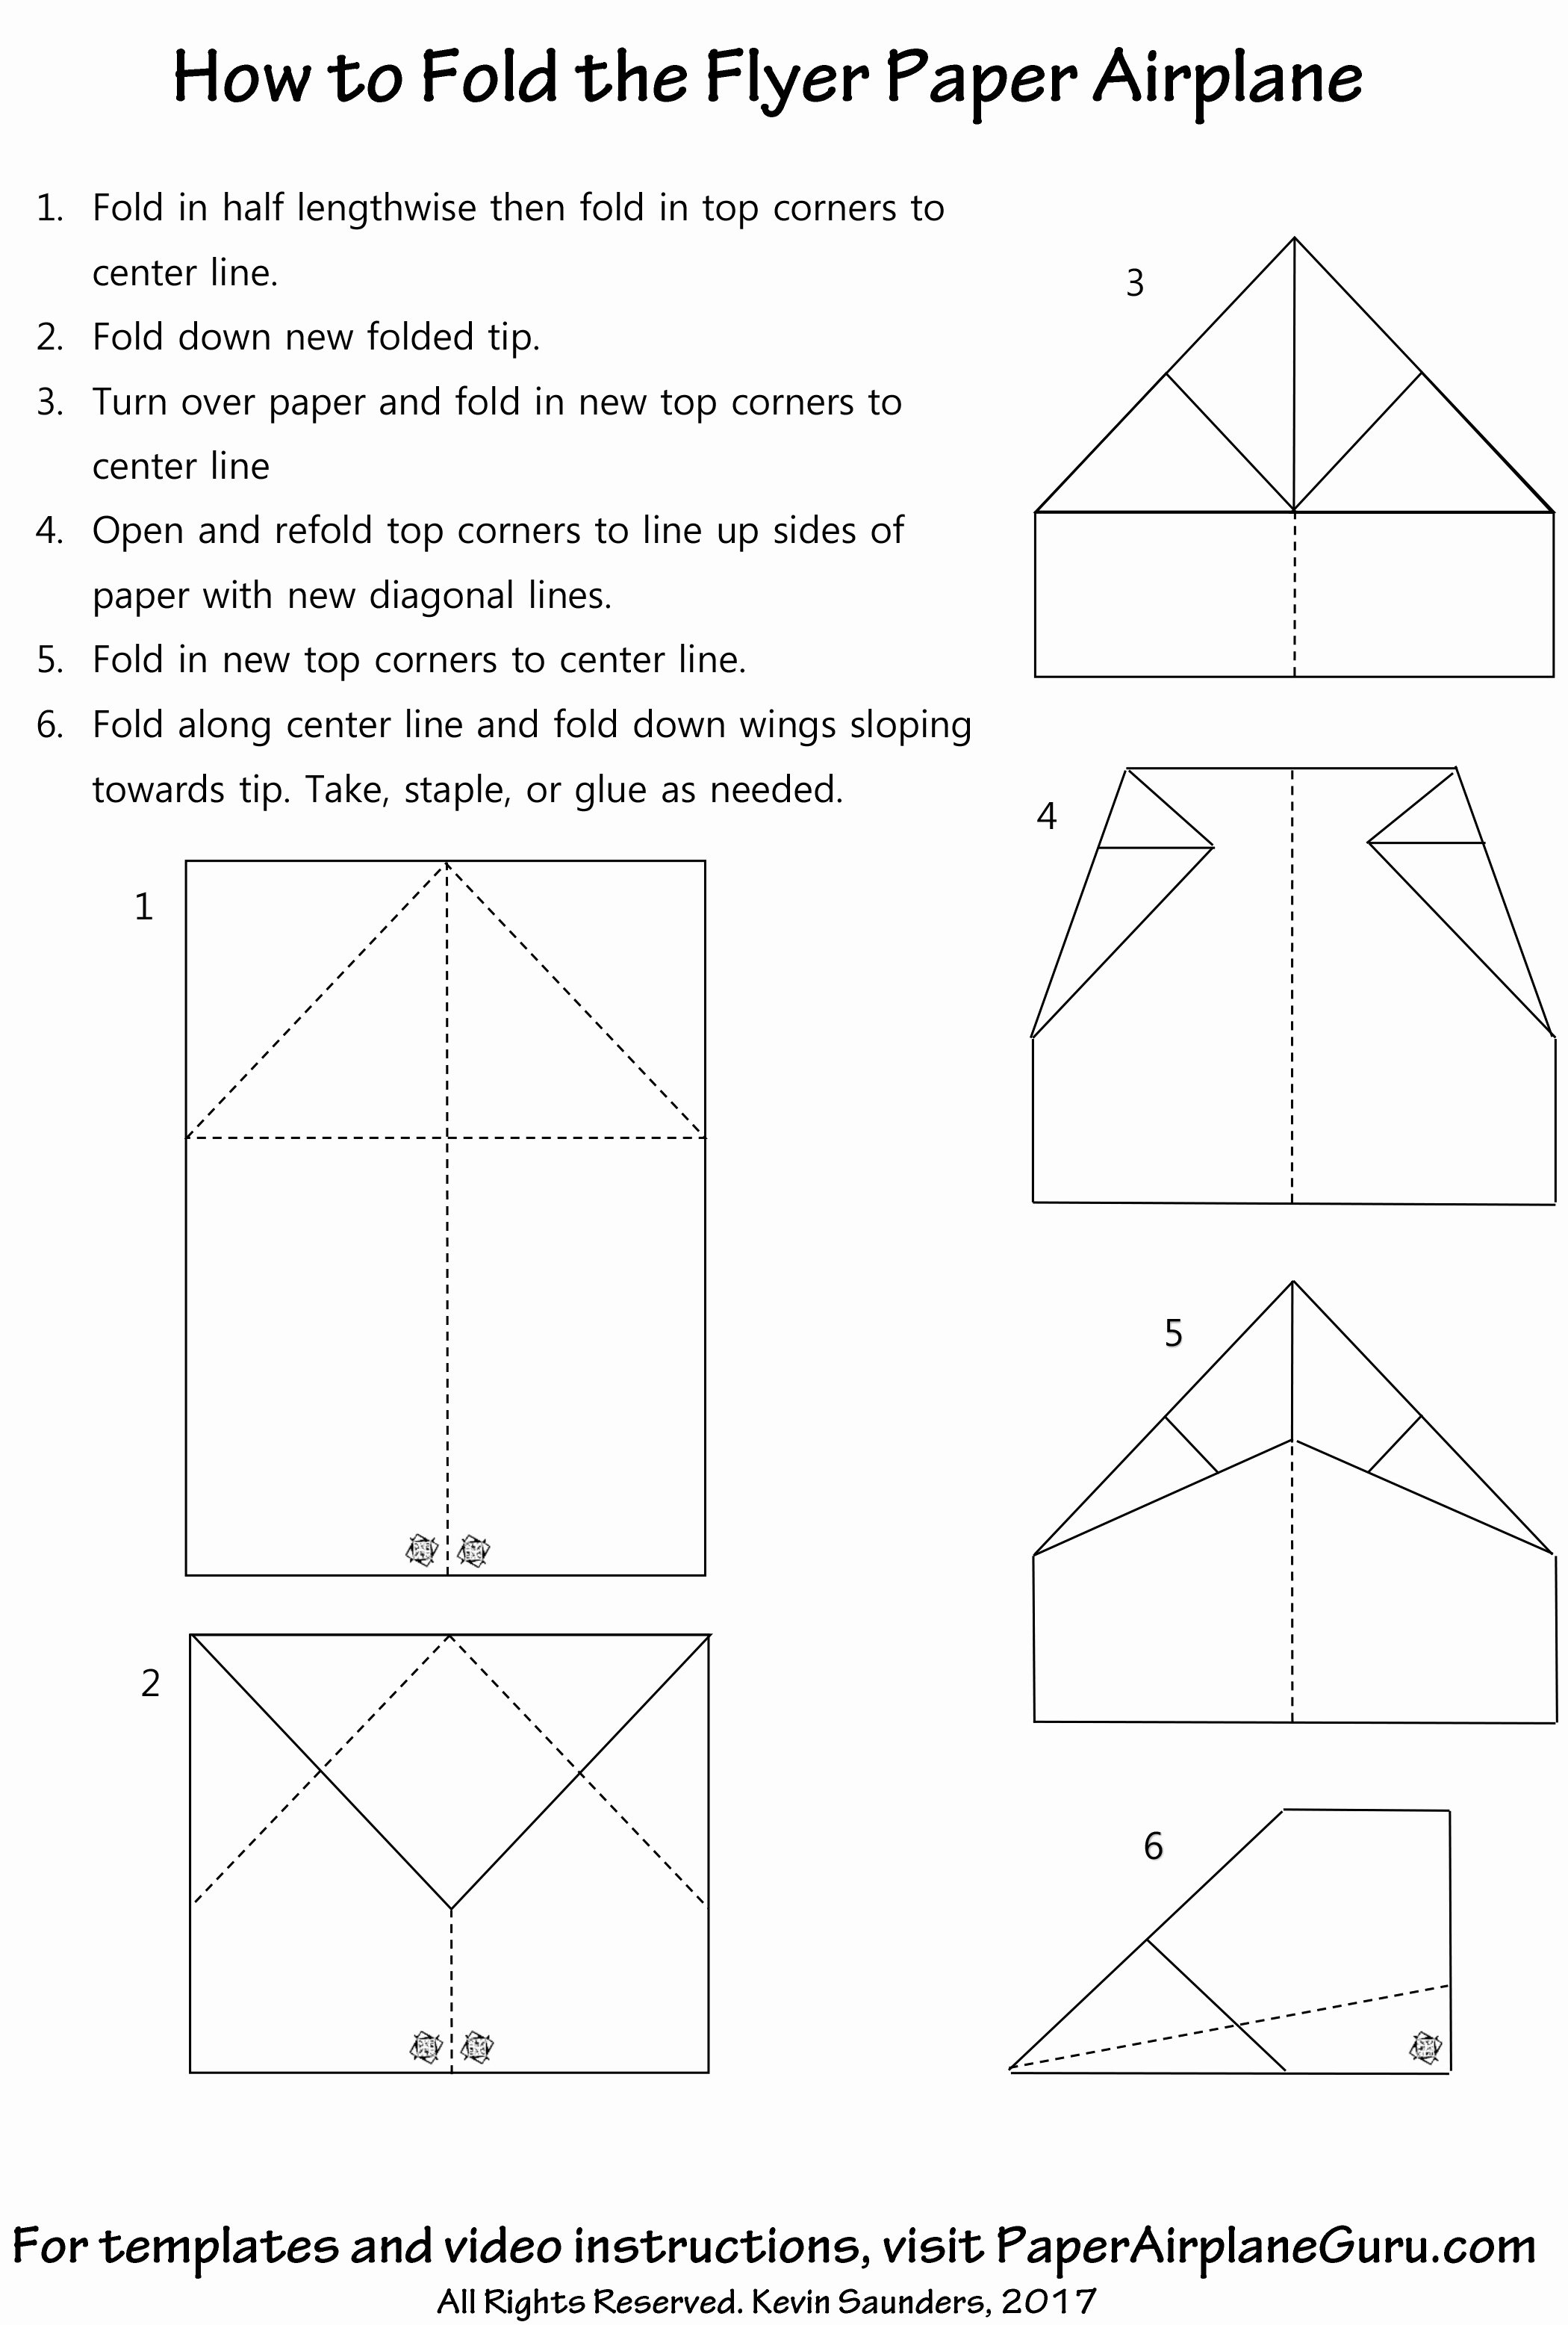 Paper Airplane Template Best Of Flyer Paper Airplane Design Instructions and Templates